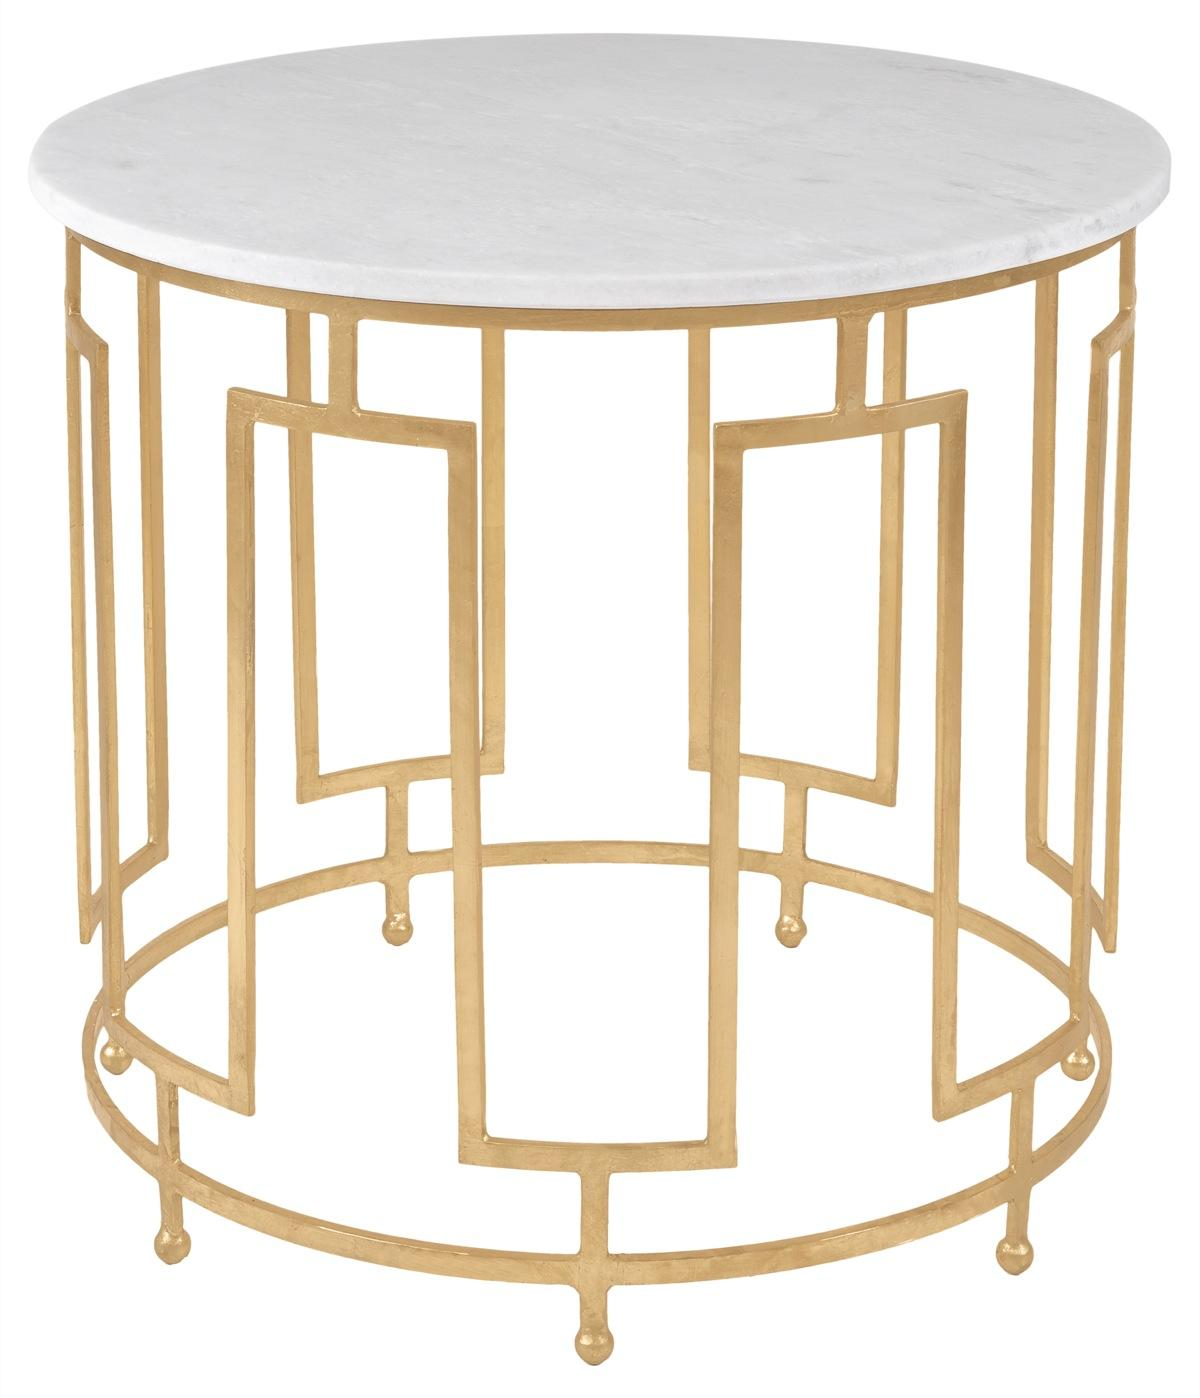 safavieh front gold accent table with marble top inch deep console cabinet kids drum throne shaped end cherry wood dining set hampton bay posada round faux coffee wicker patio and